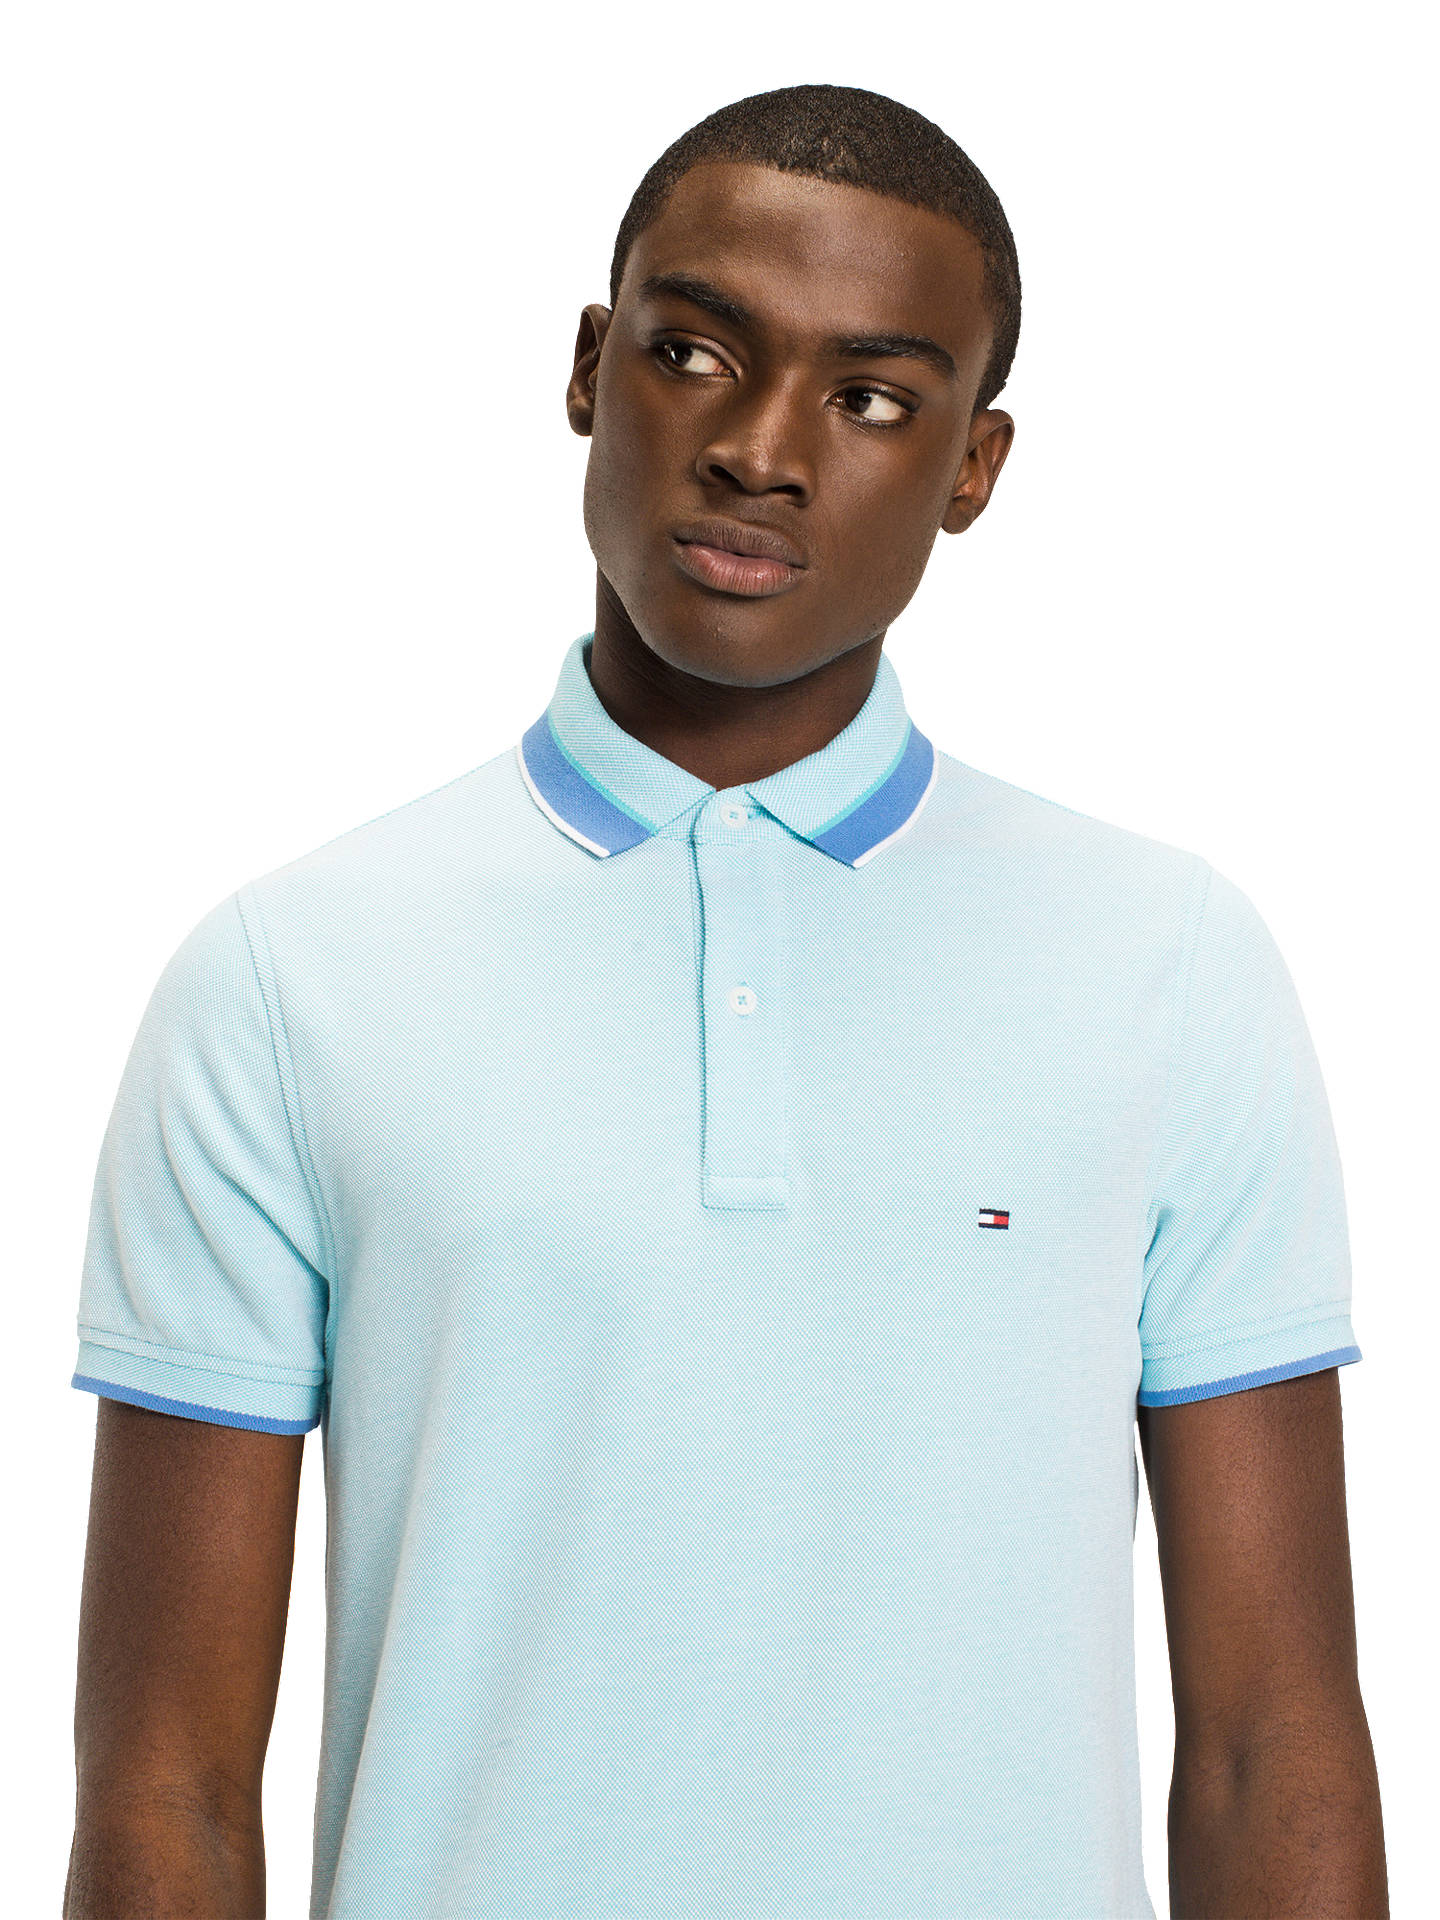 7ffbff58 Buy Tommy Hilfiger Oxford Tipped Slim Polo Shirt, Capri, S Online at  johnlewis.